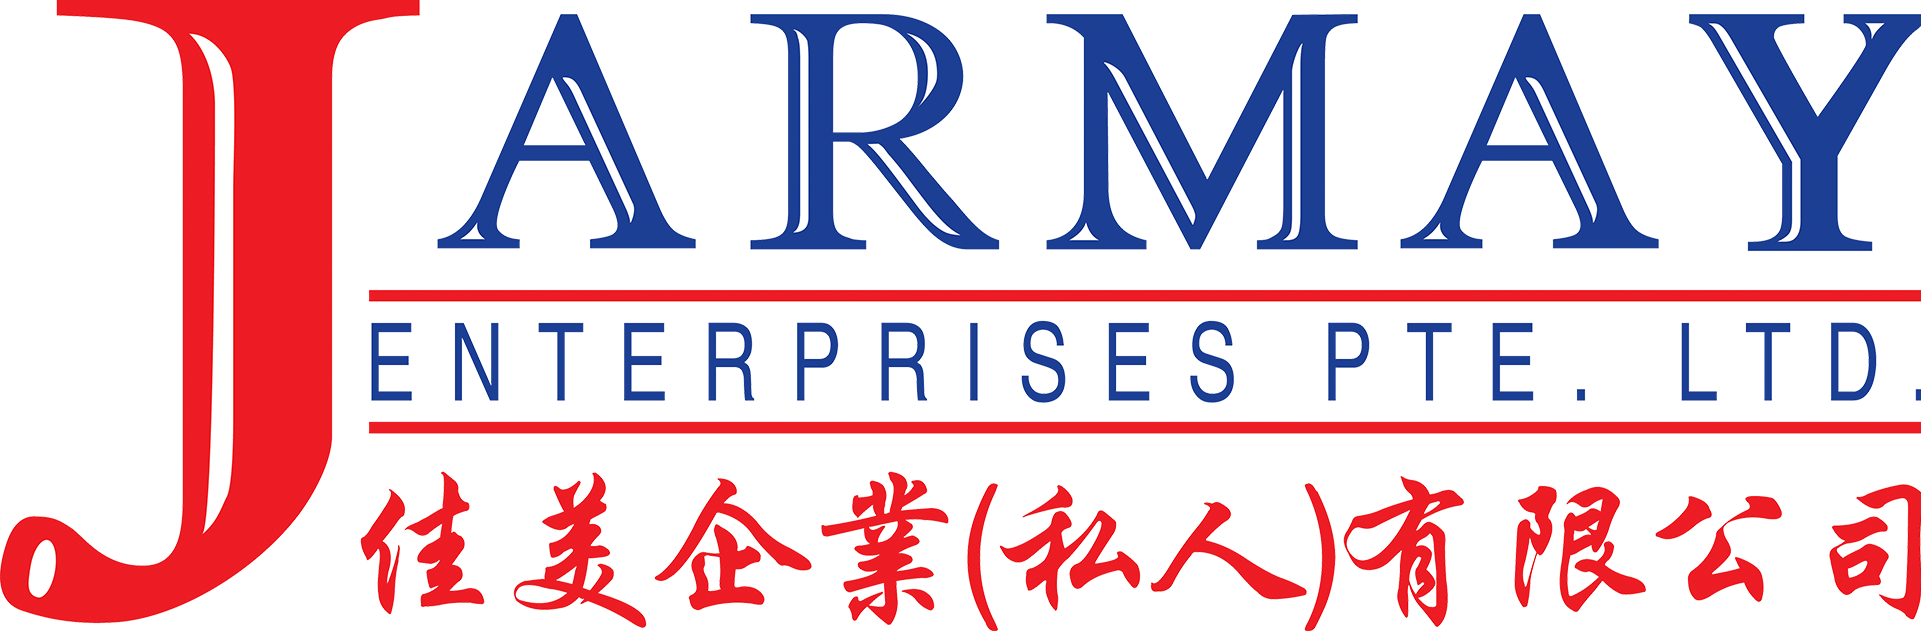 Jarmay Enterprises Pte. Ltd